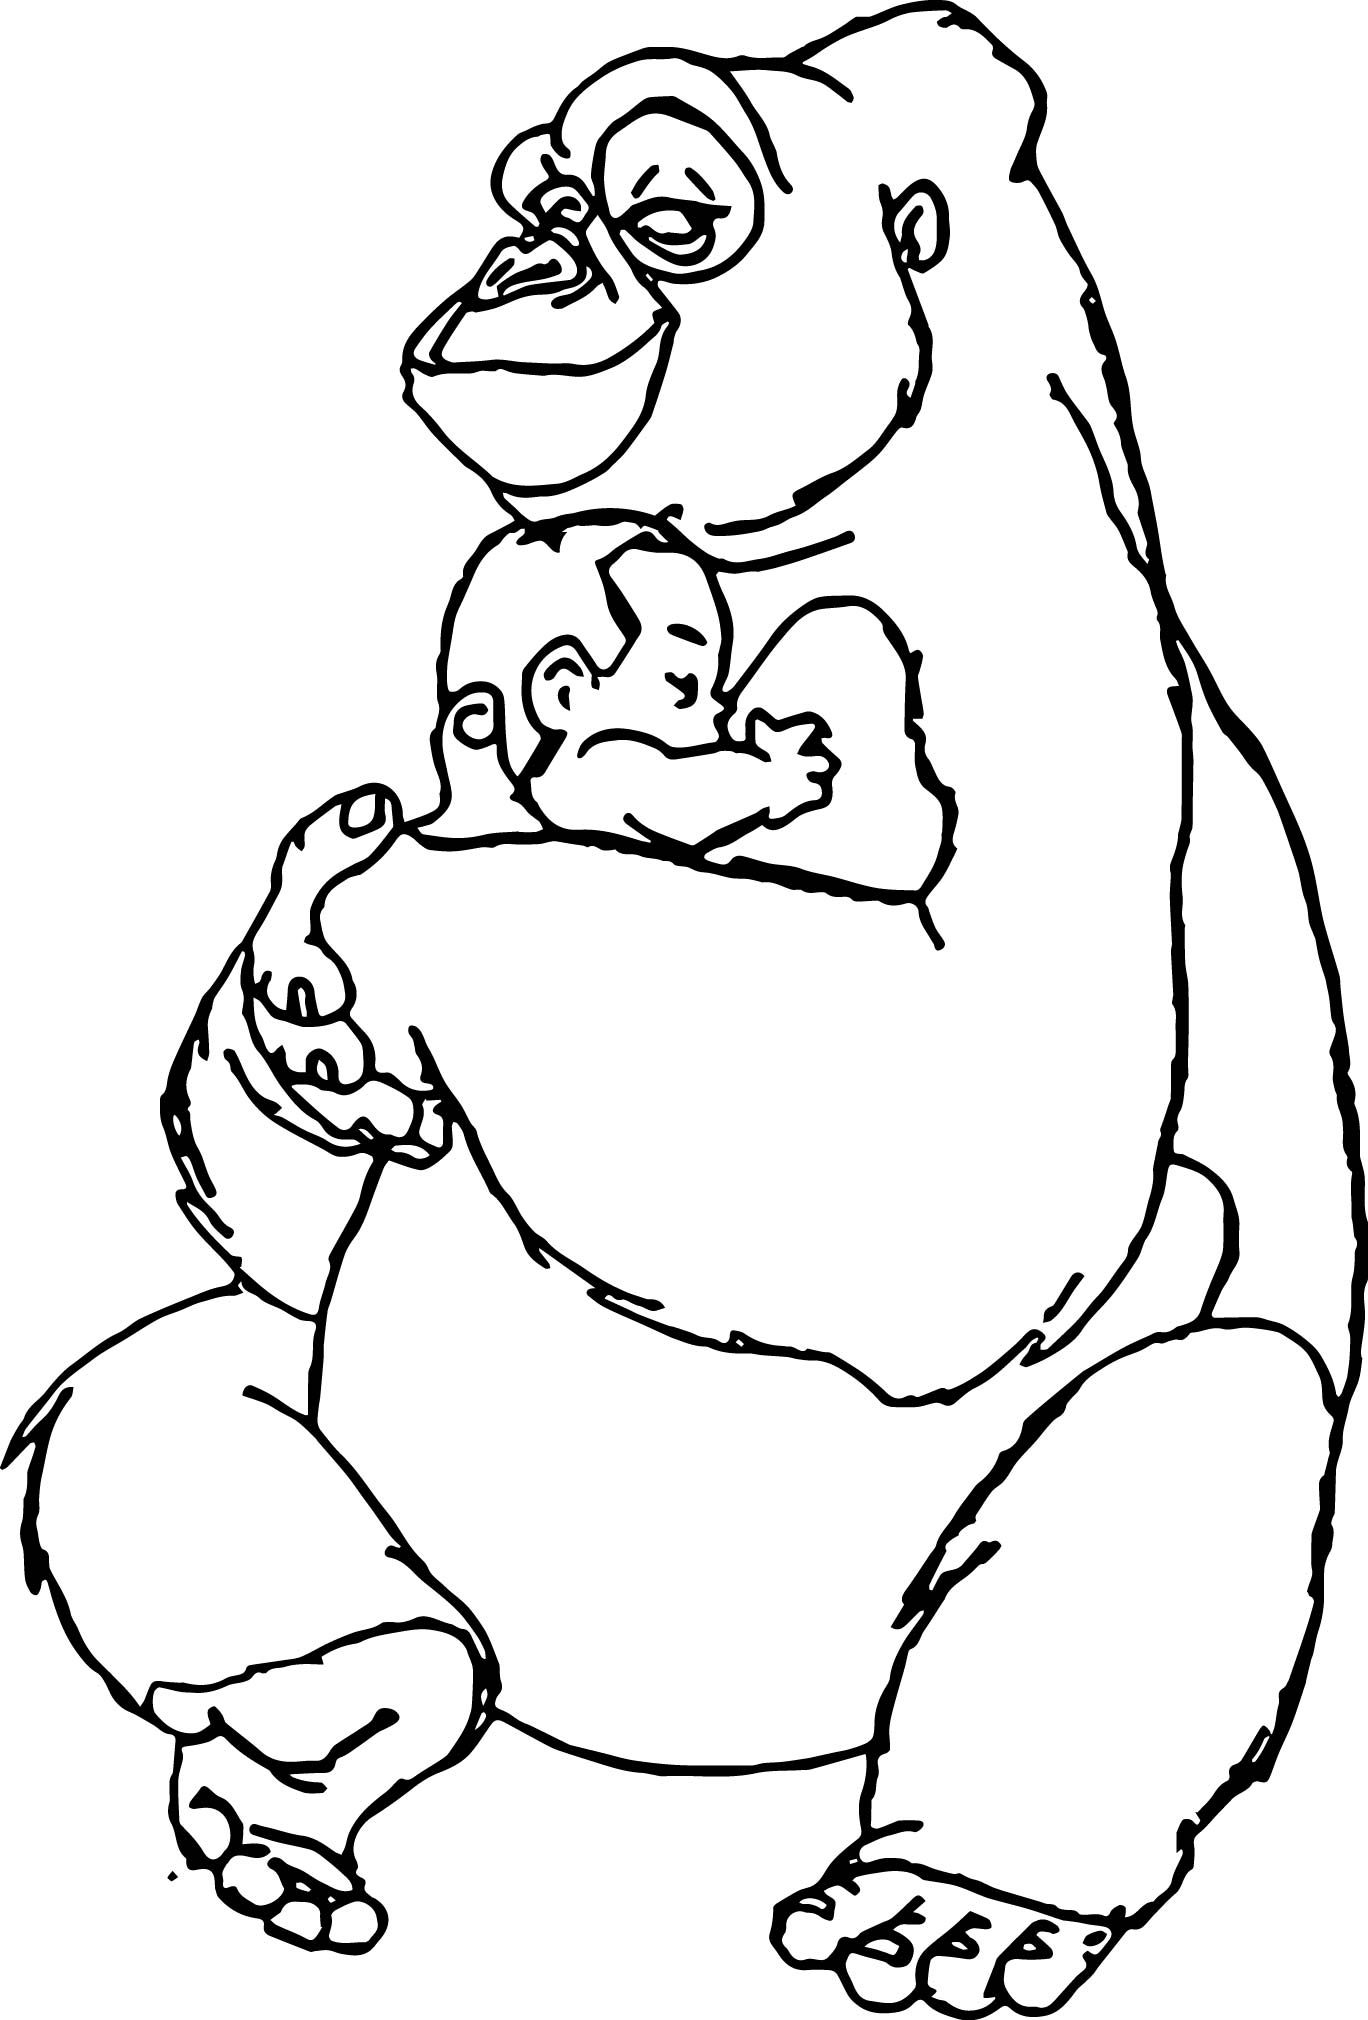 Disney Baby Tarzan Love Coloring Page